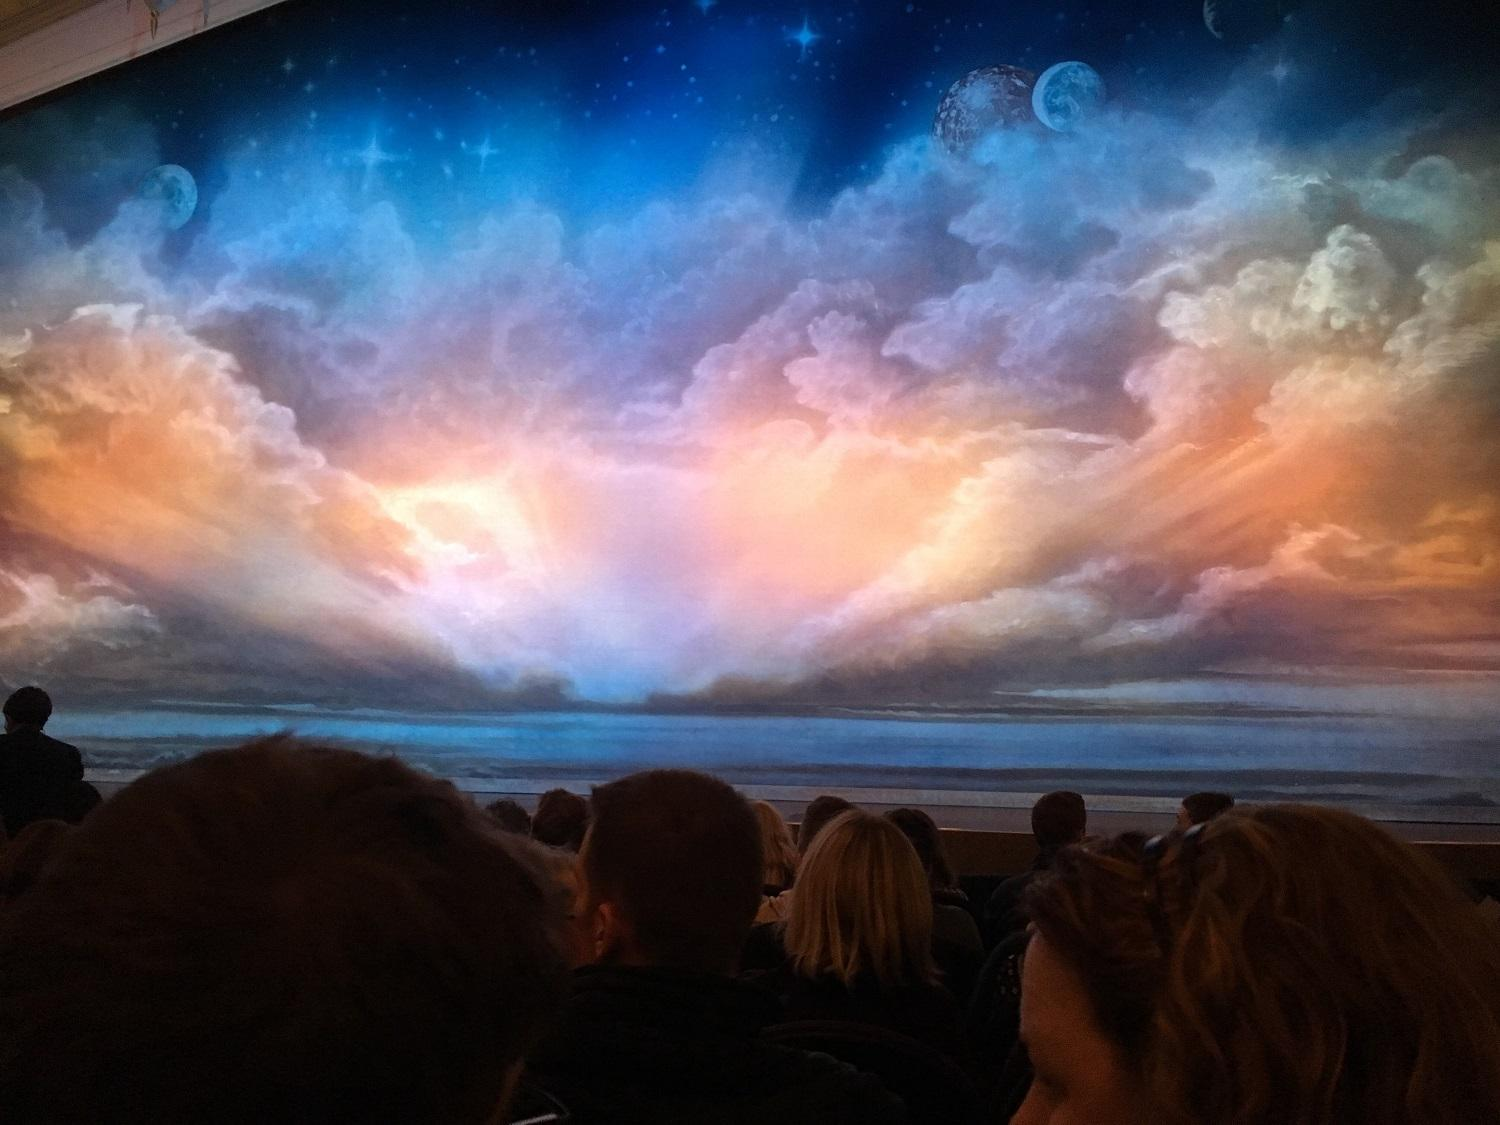 Eugene O'Neill Theatre Section Orchestra C Row G Seat 103